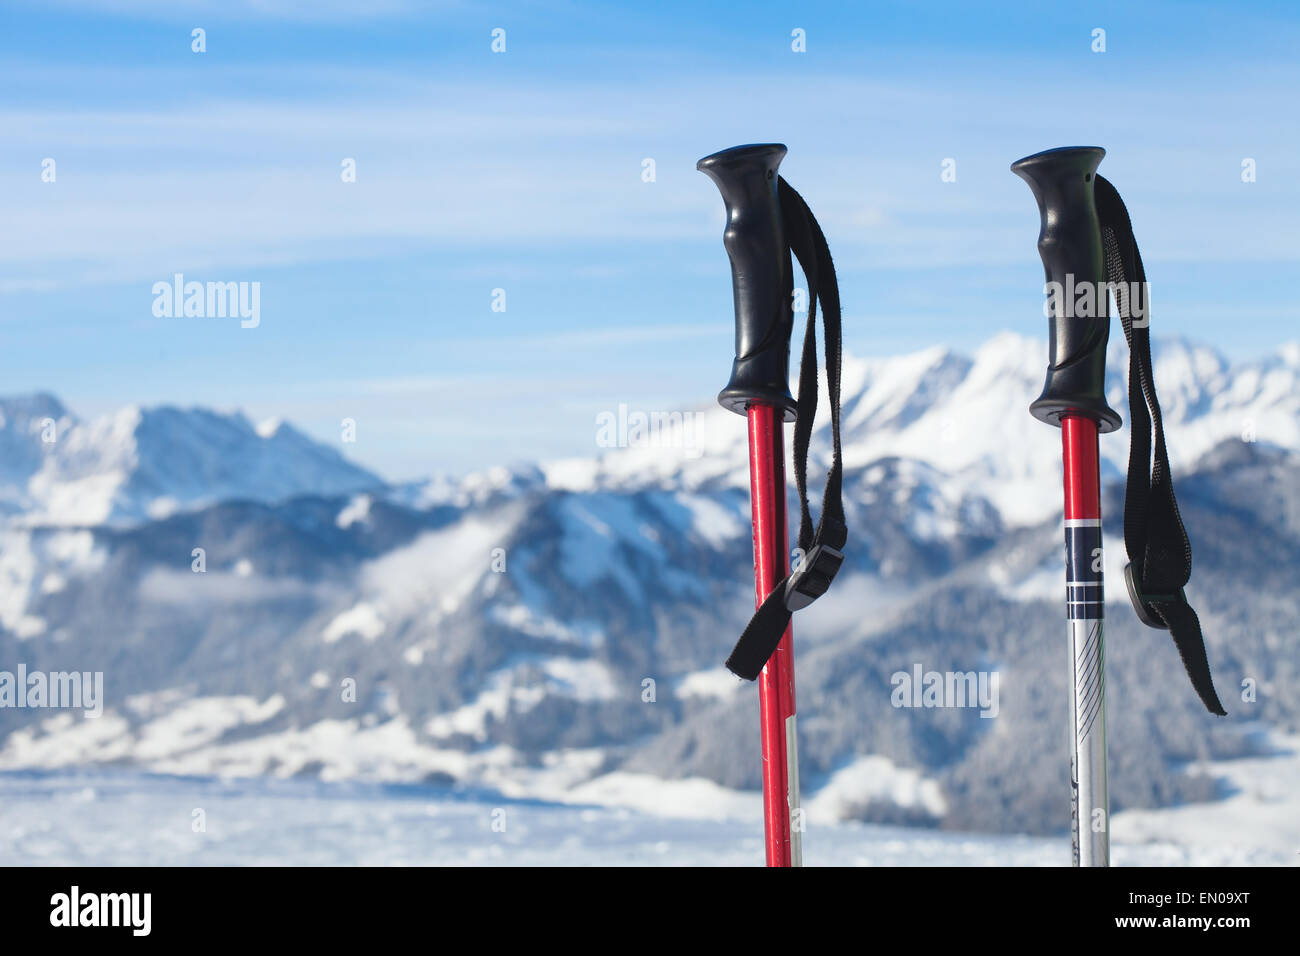 skiing in mountains, close up of two ski poles - Stock Image